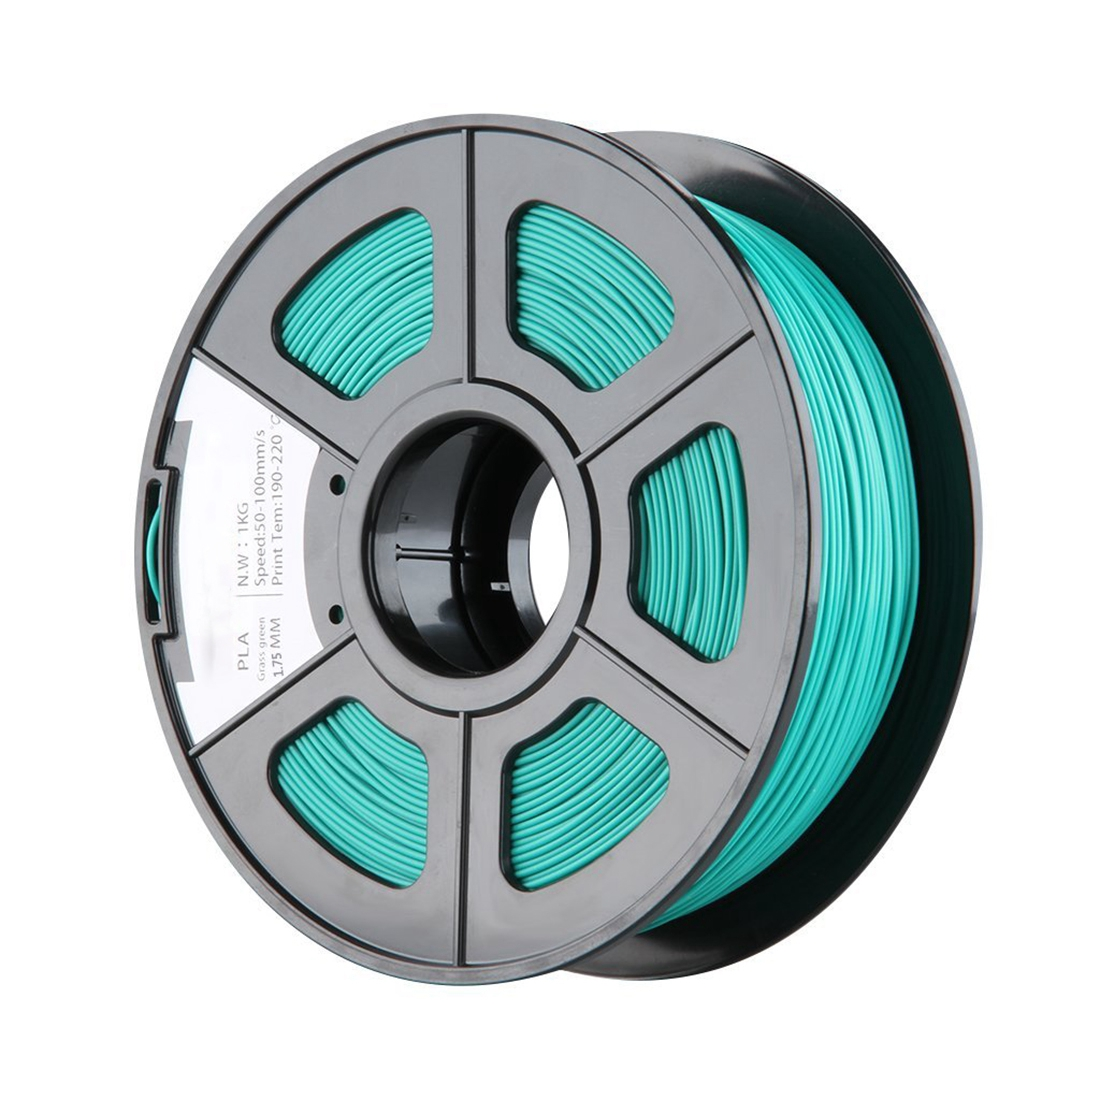 New 1.75mm PLA 3D Printer Filament - 1kg Spool (2.2 lbs) - Dimensional Accuracy +/- 0.02mm - Multi Colors Available (Gold) pla gold wanhao 3d printer filamnets pla 1 75mm plastic spool 1kg